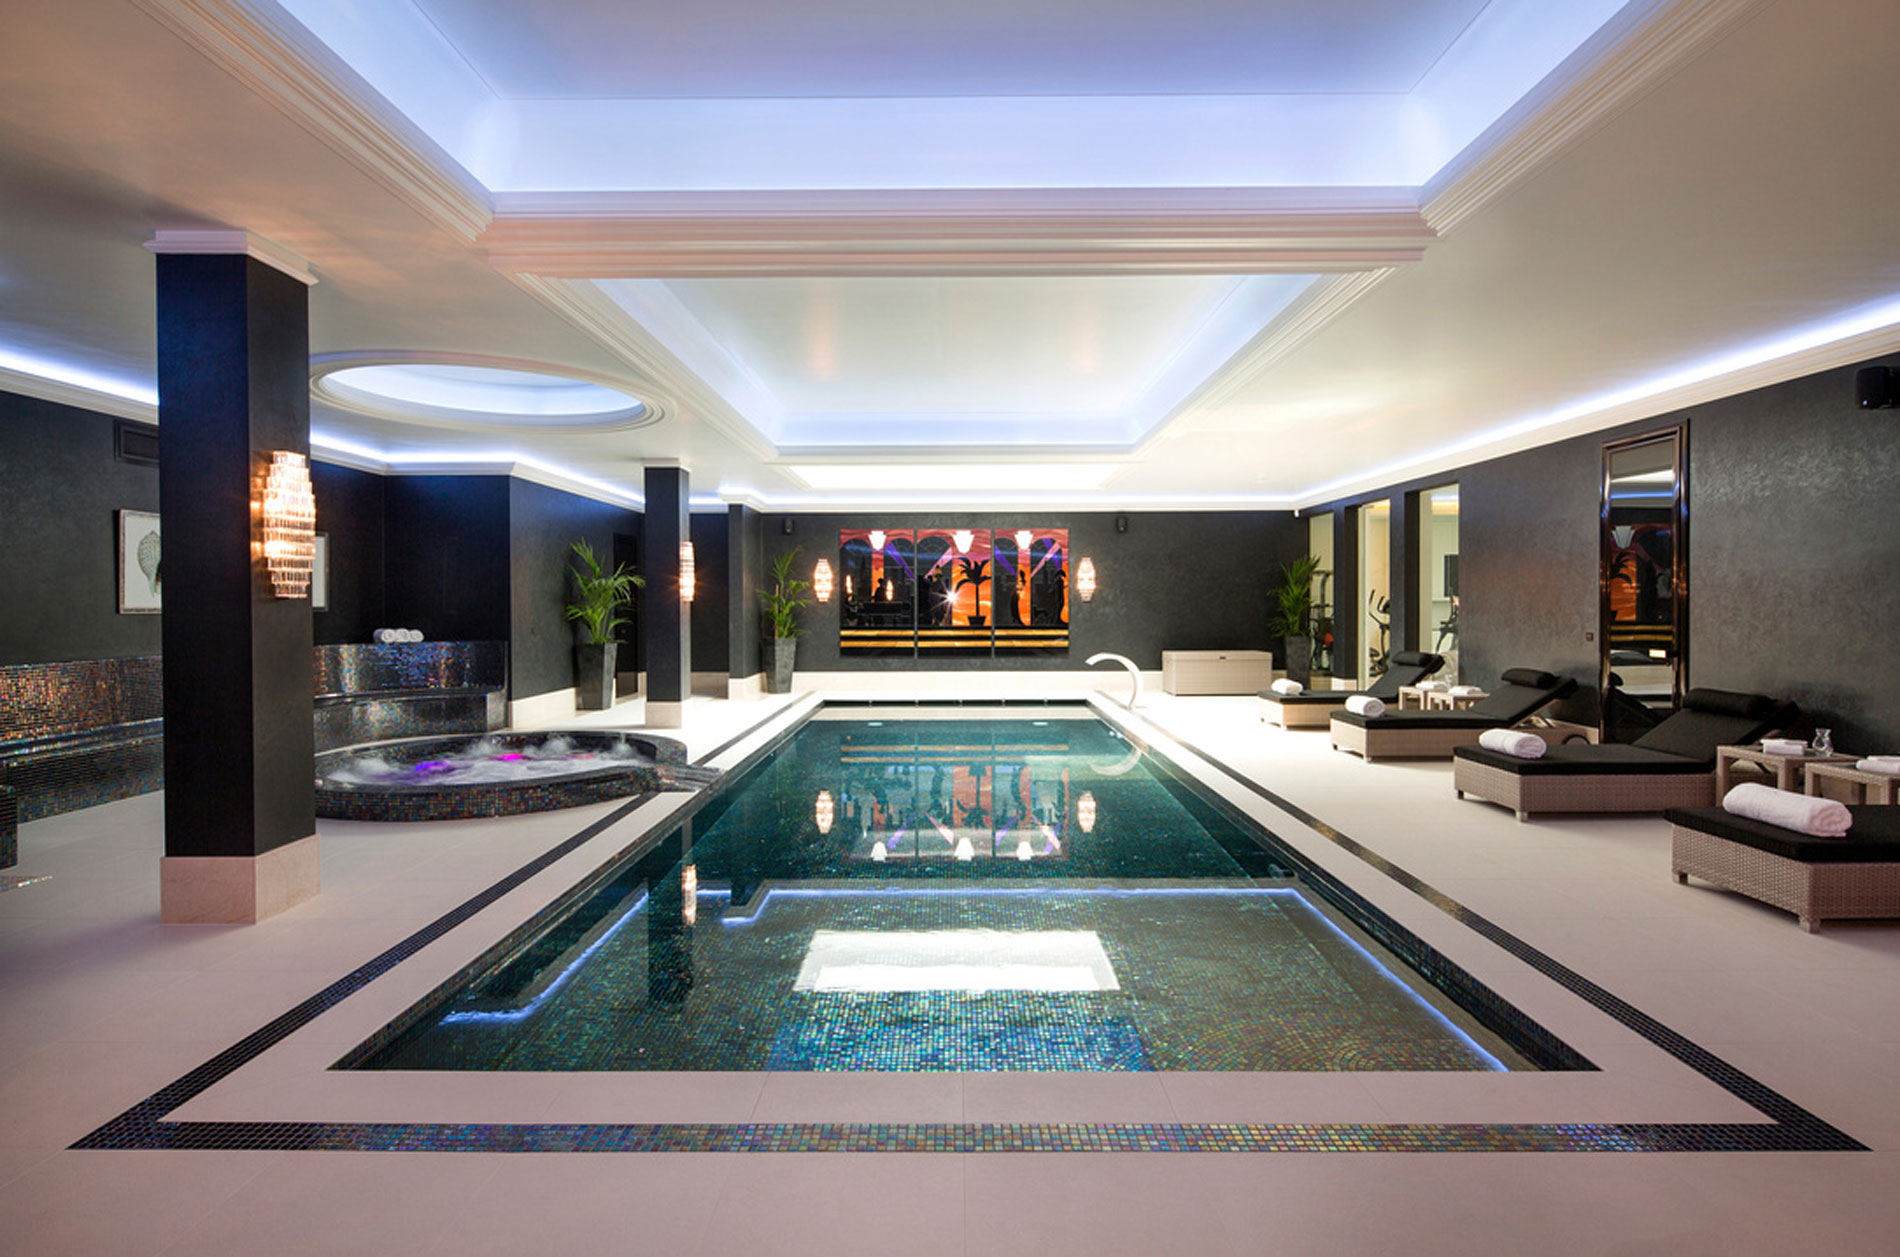 How to design luxury indoor swimming pools wolff for Swimming pool room ideas